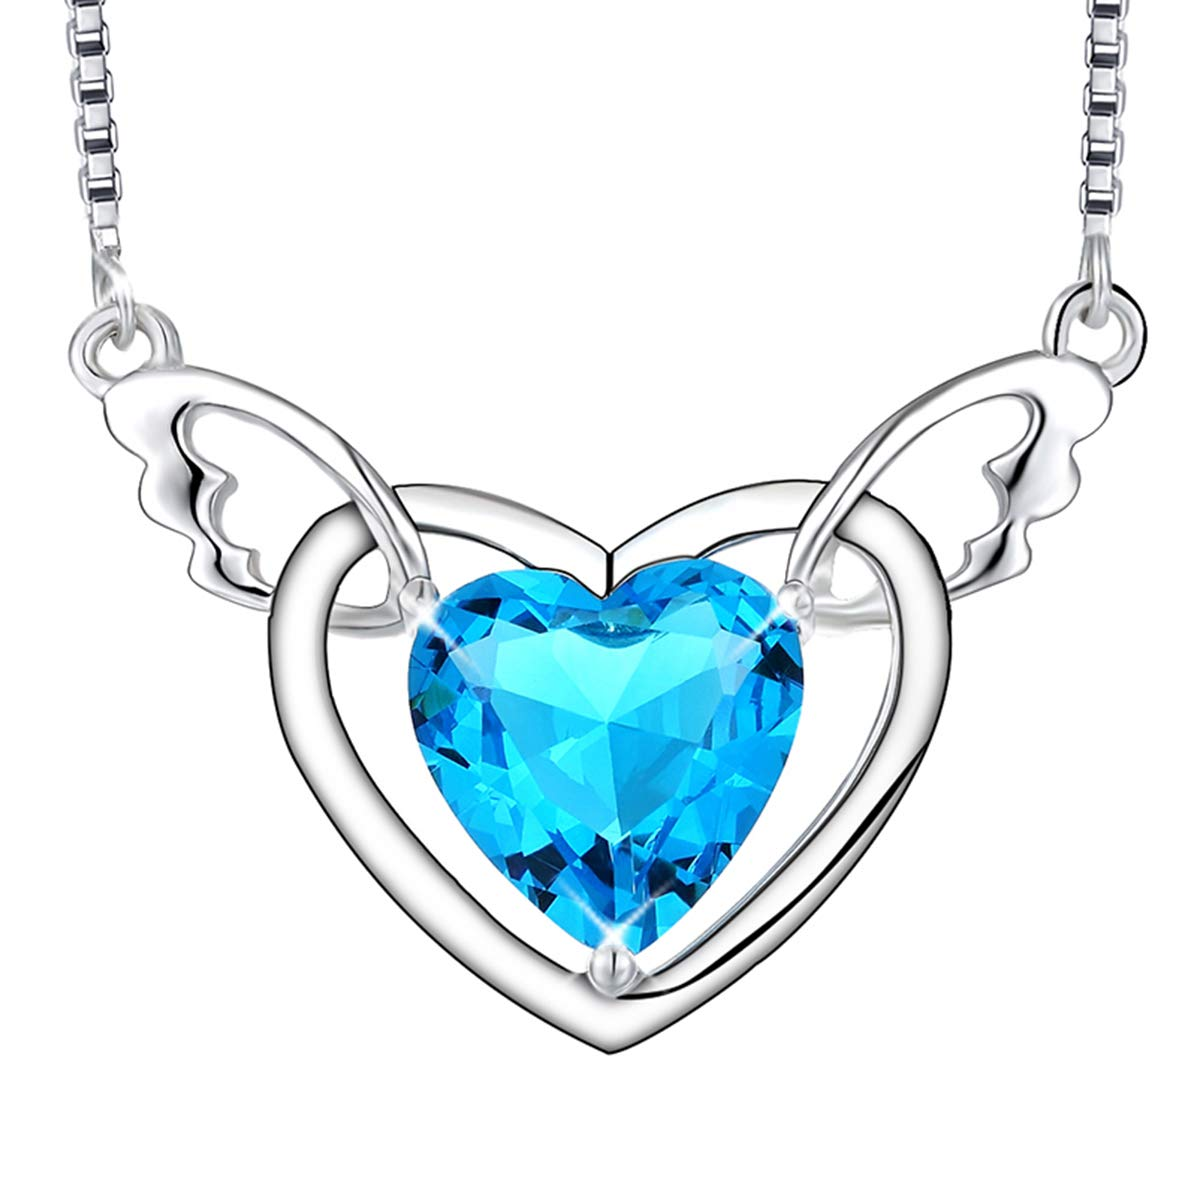 EURYNOME Sterling Silver Angel Wing Blue Love Heart Crystal Pendant Necklace Wedding Anniversary Jewelry for Daughter Wife Mom,20''